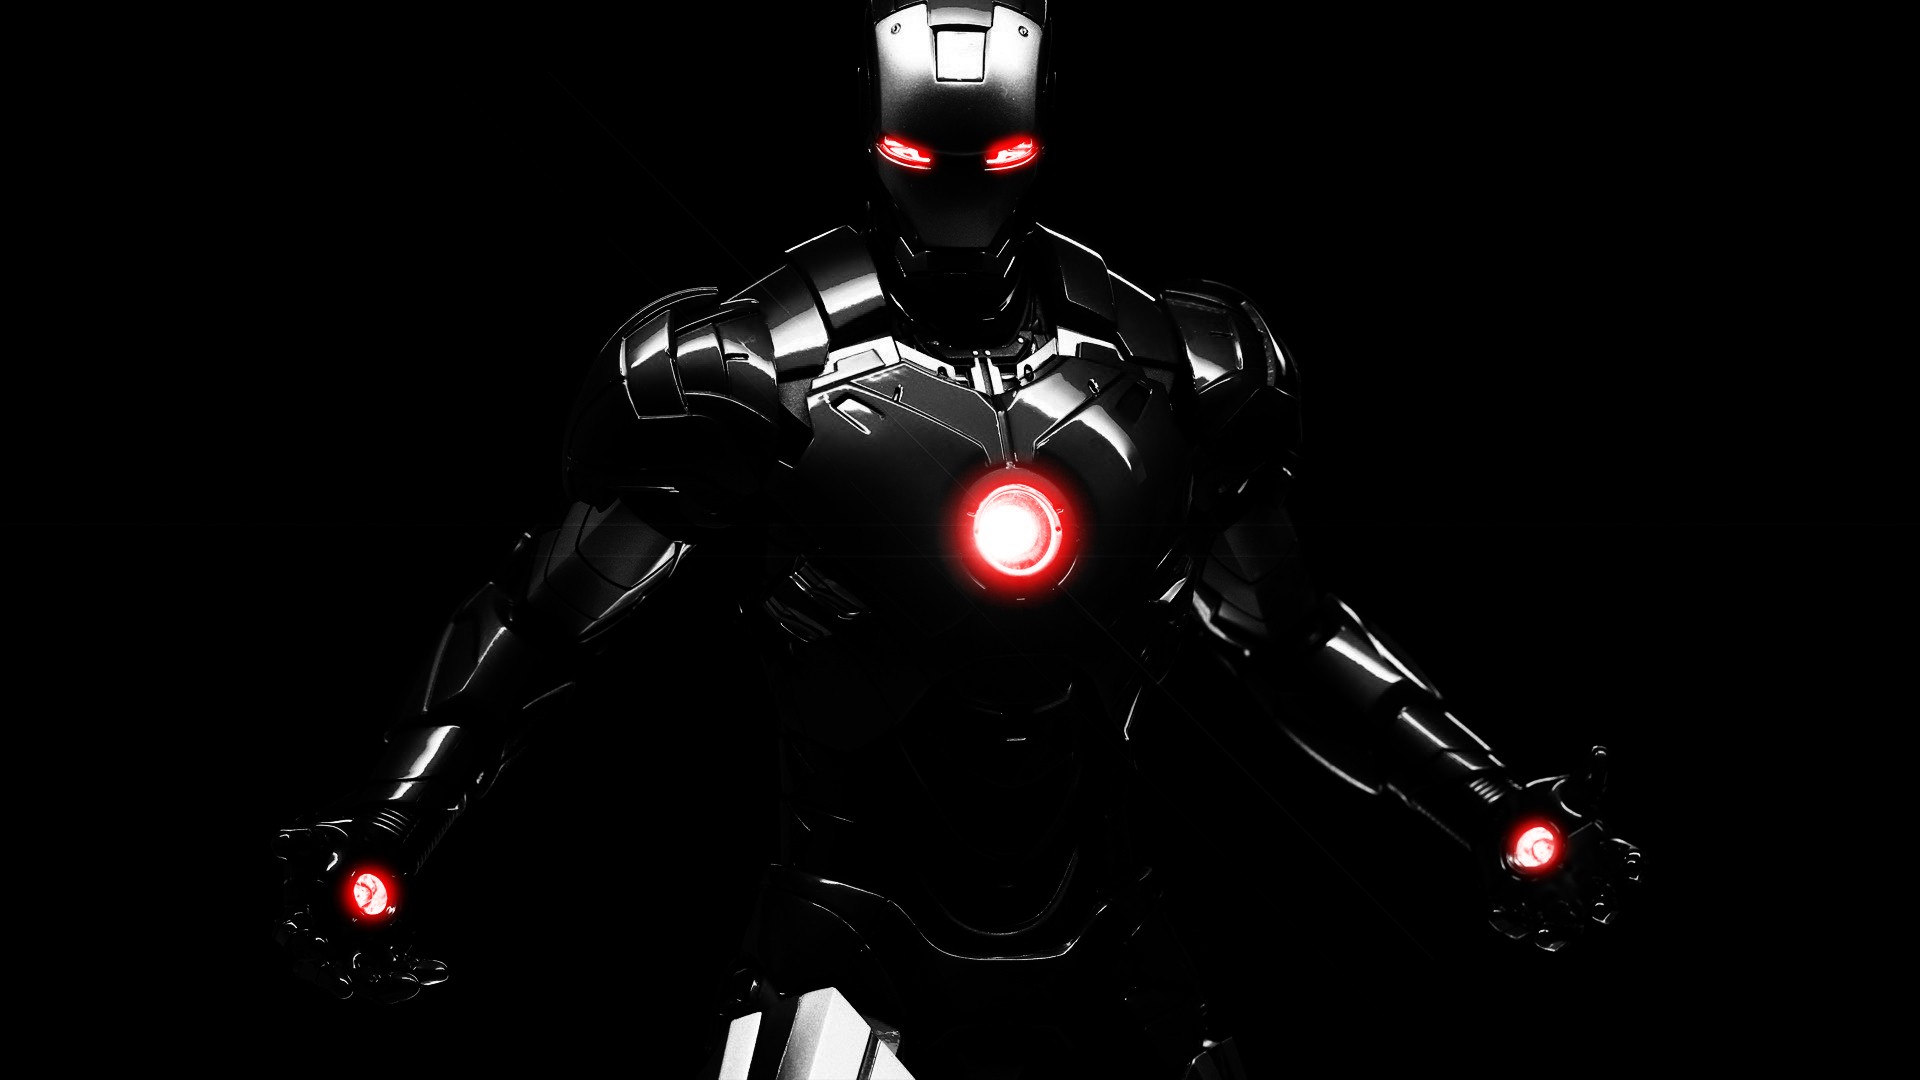 Desktop Wallpaper High Definition In 1080p With Iron Man Photos